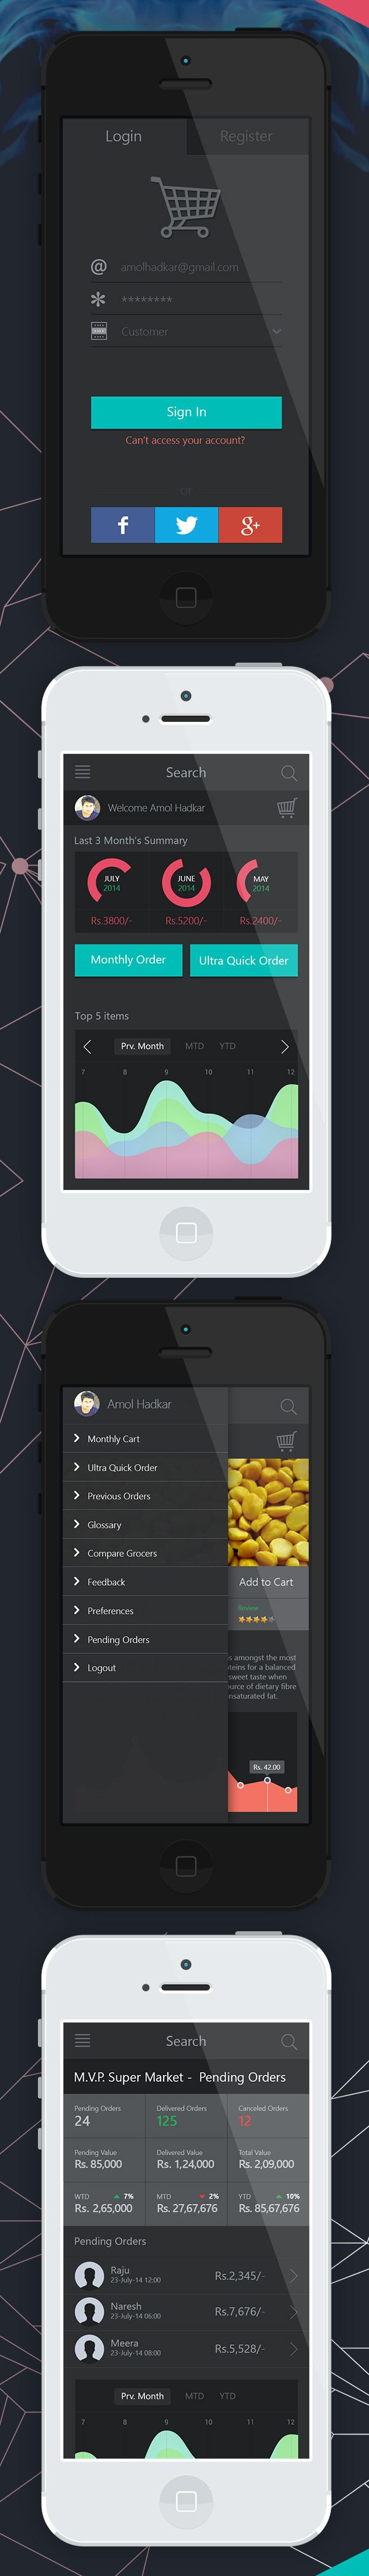 35 Modern Mobile App UI Designs with Amazing User Experience #ui #mobile #app